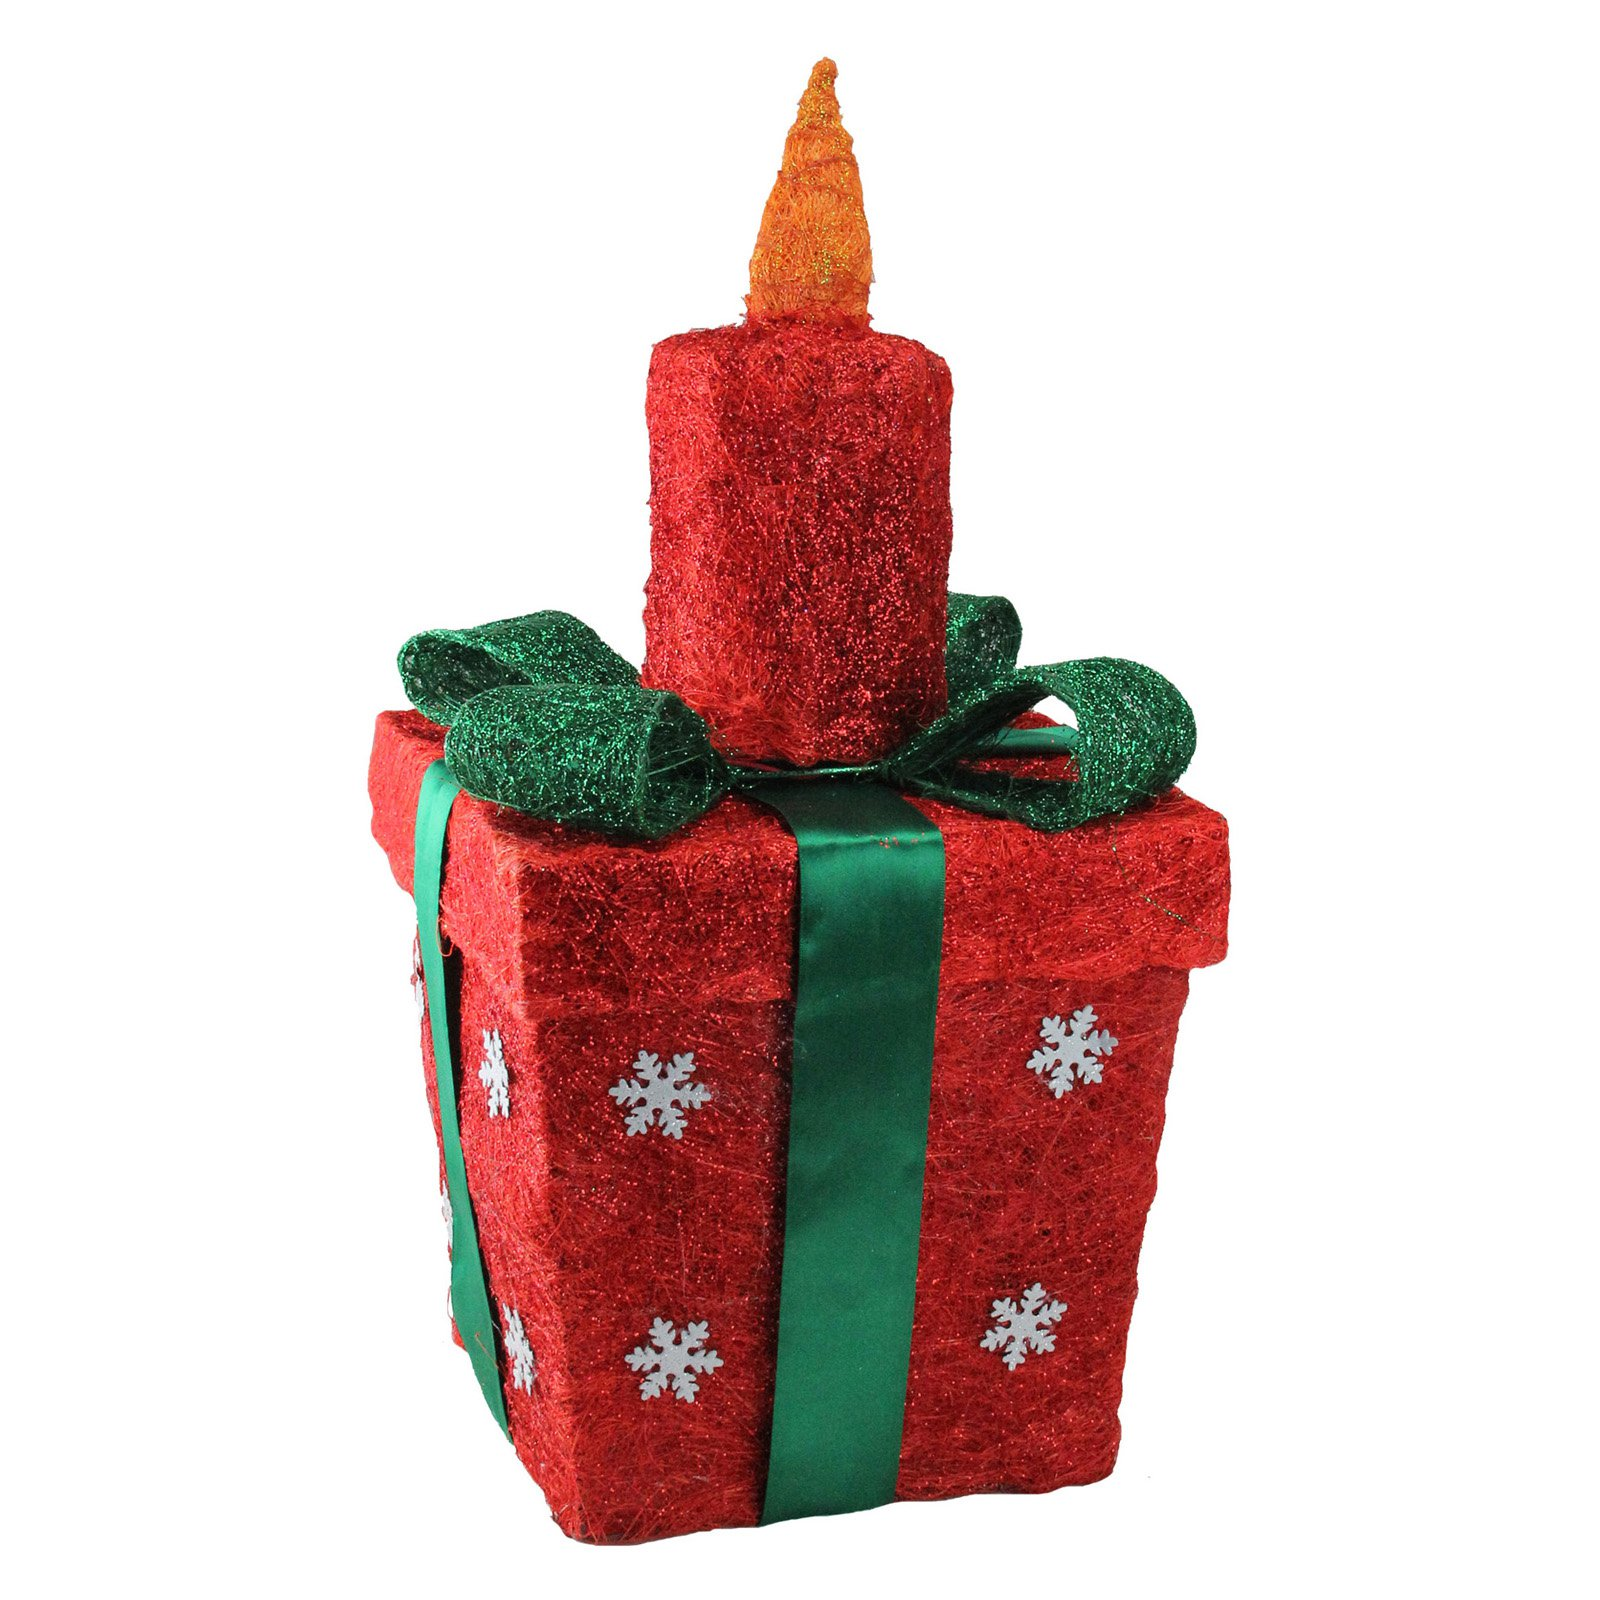 Northlight 20 in. Lighted Sisal Gift Box with Candle Christmas Yard Decoration